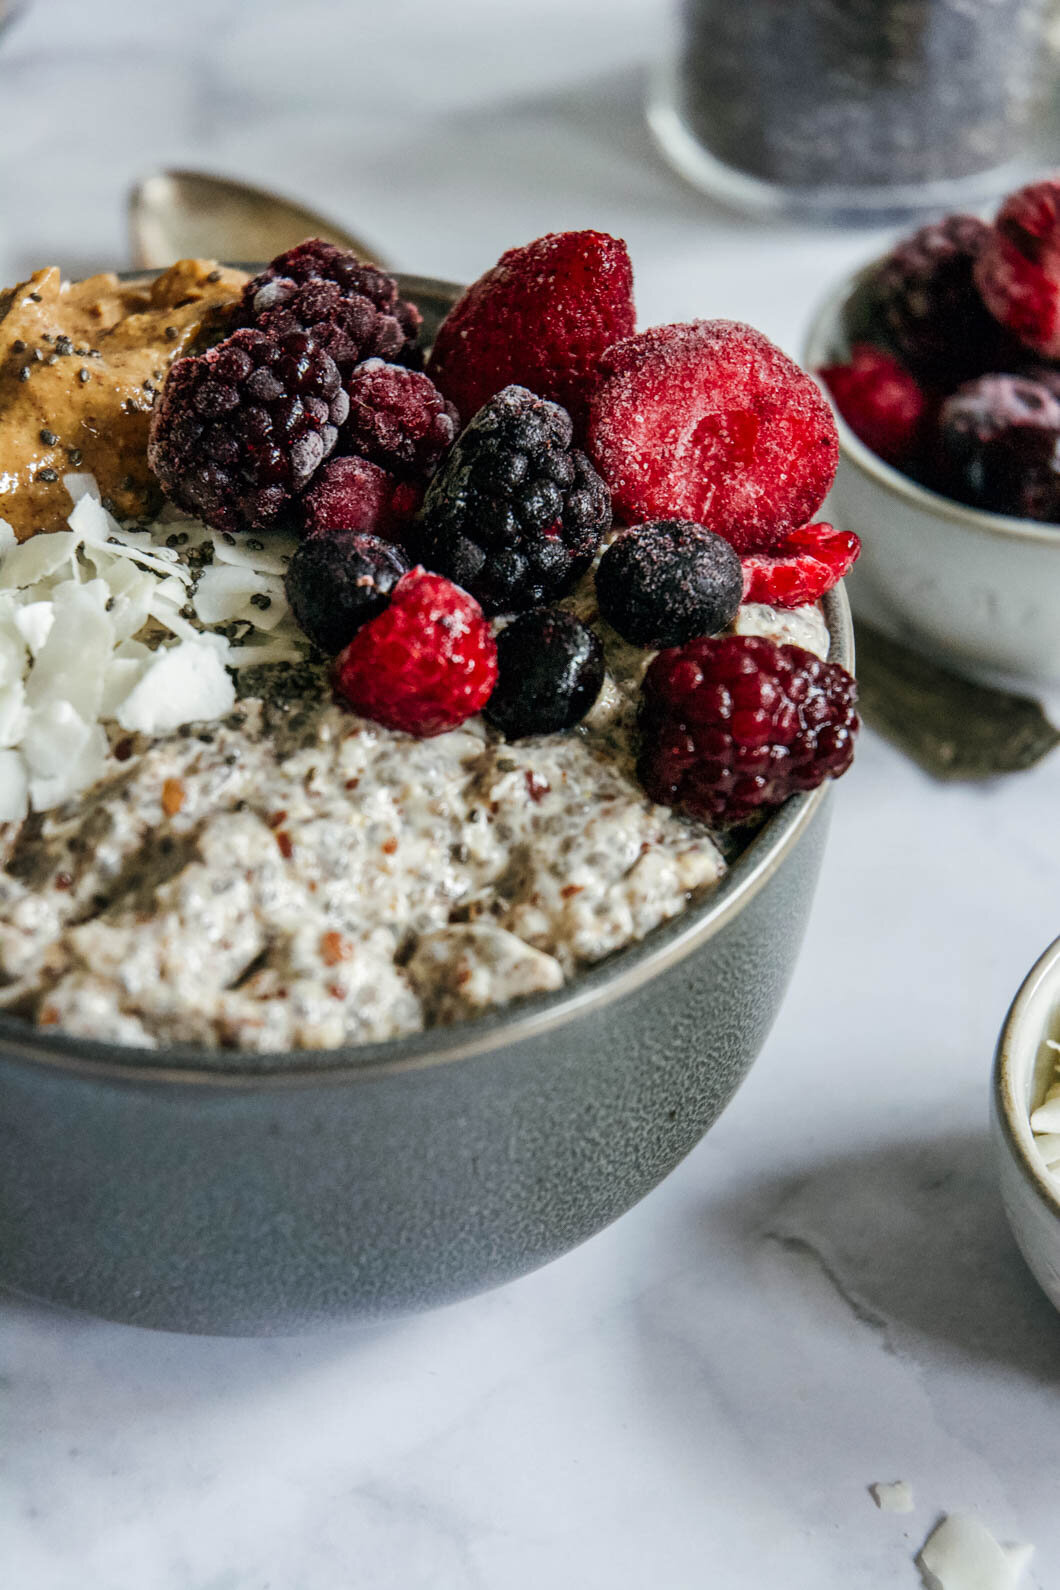 Overnight paleo oatmeal with fruit